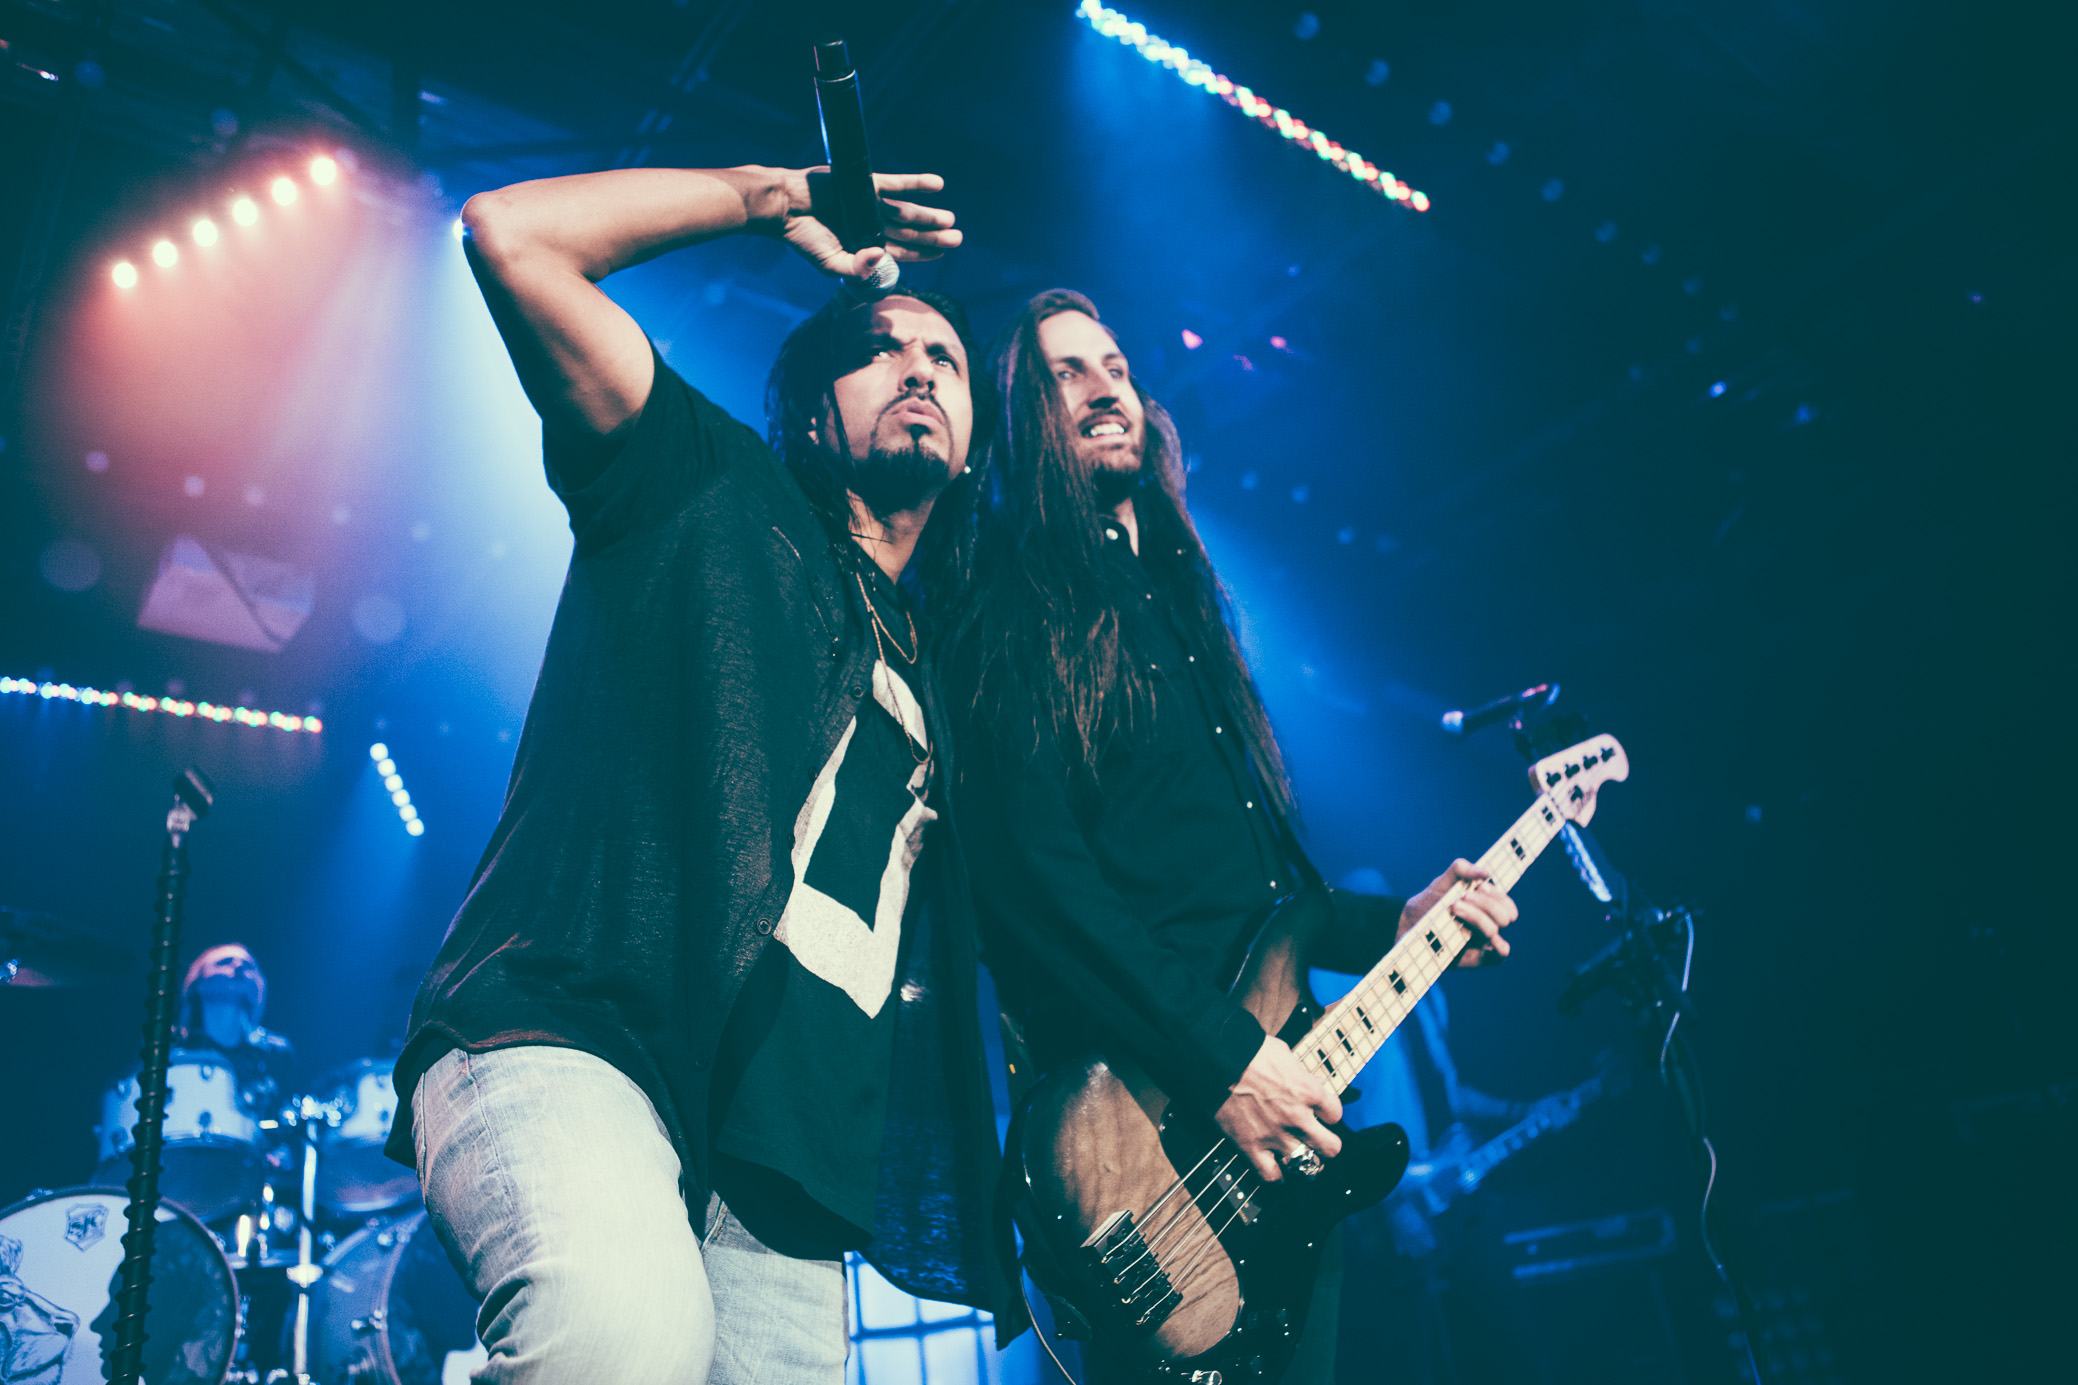 Leigh Kakaty and Matt DiRito of Pop Evil perform in concert at Saturn Birmingham in Birmingham, Alabama on March 13th, 2018. (Photo by David A. Smith/DSmithScenes)